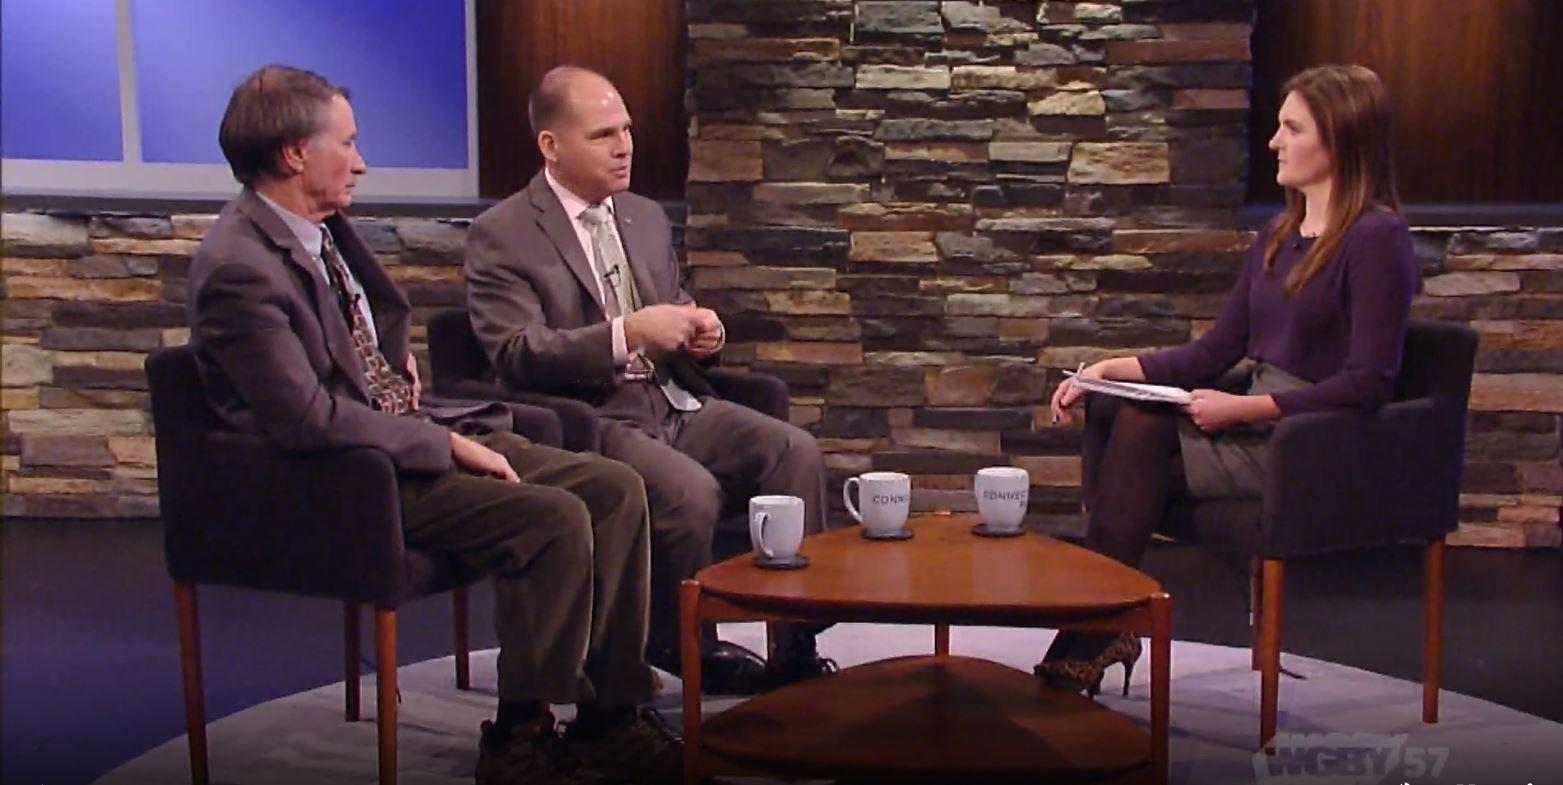 Smith College's Marc Lendler & Hampshire College's Ed Wingenbach discuss the impeachment of Donald Trump and why the Senate needs to set impeachment rules.